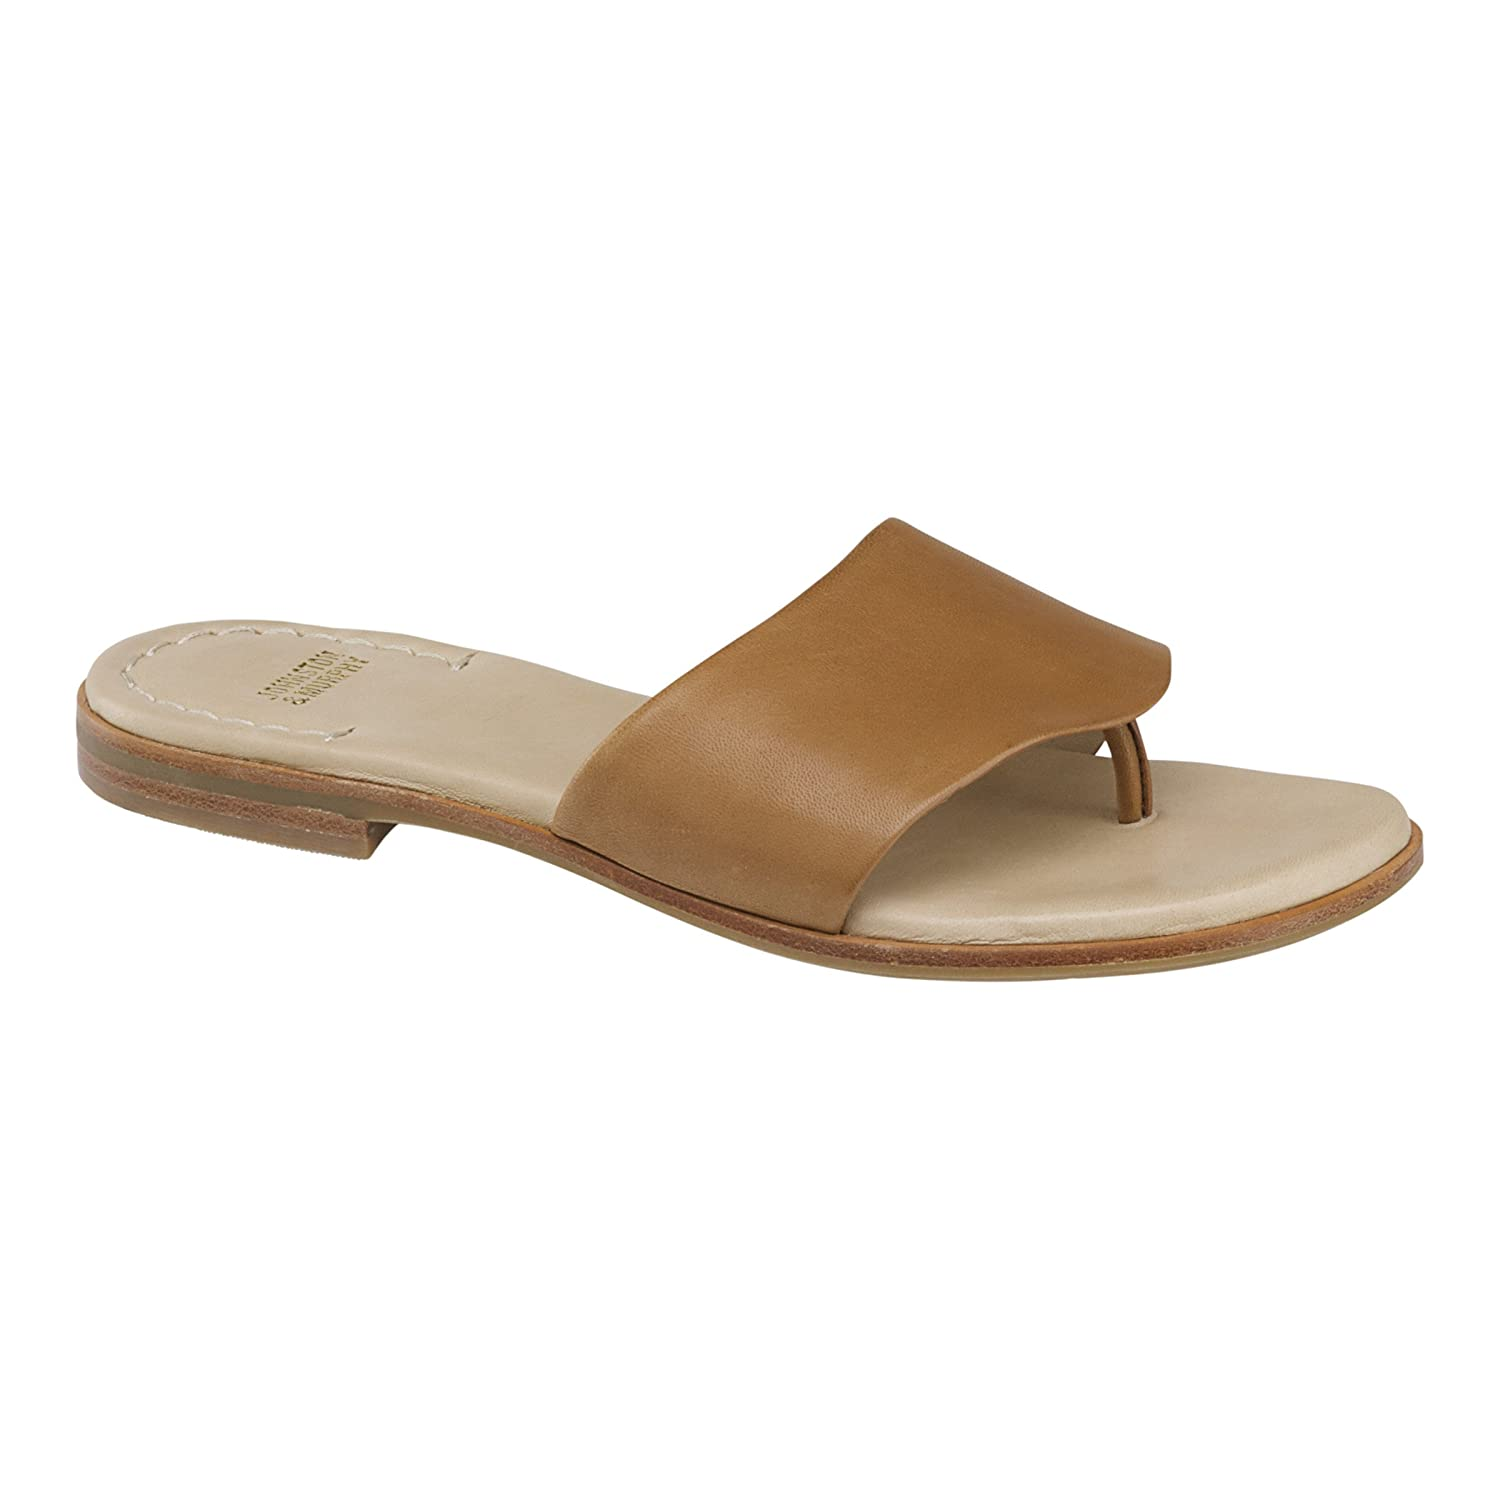 Johnston & Murphy Women's Raney Camel Flat Sandal B01HQYH3RU 8 B(M) US|Camel